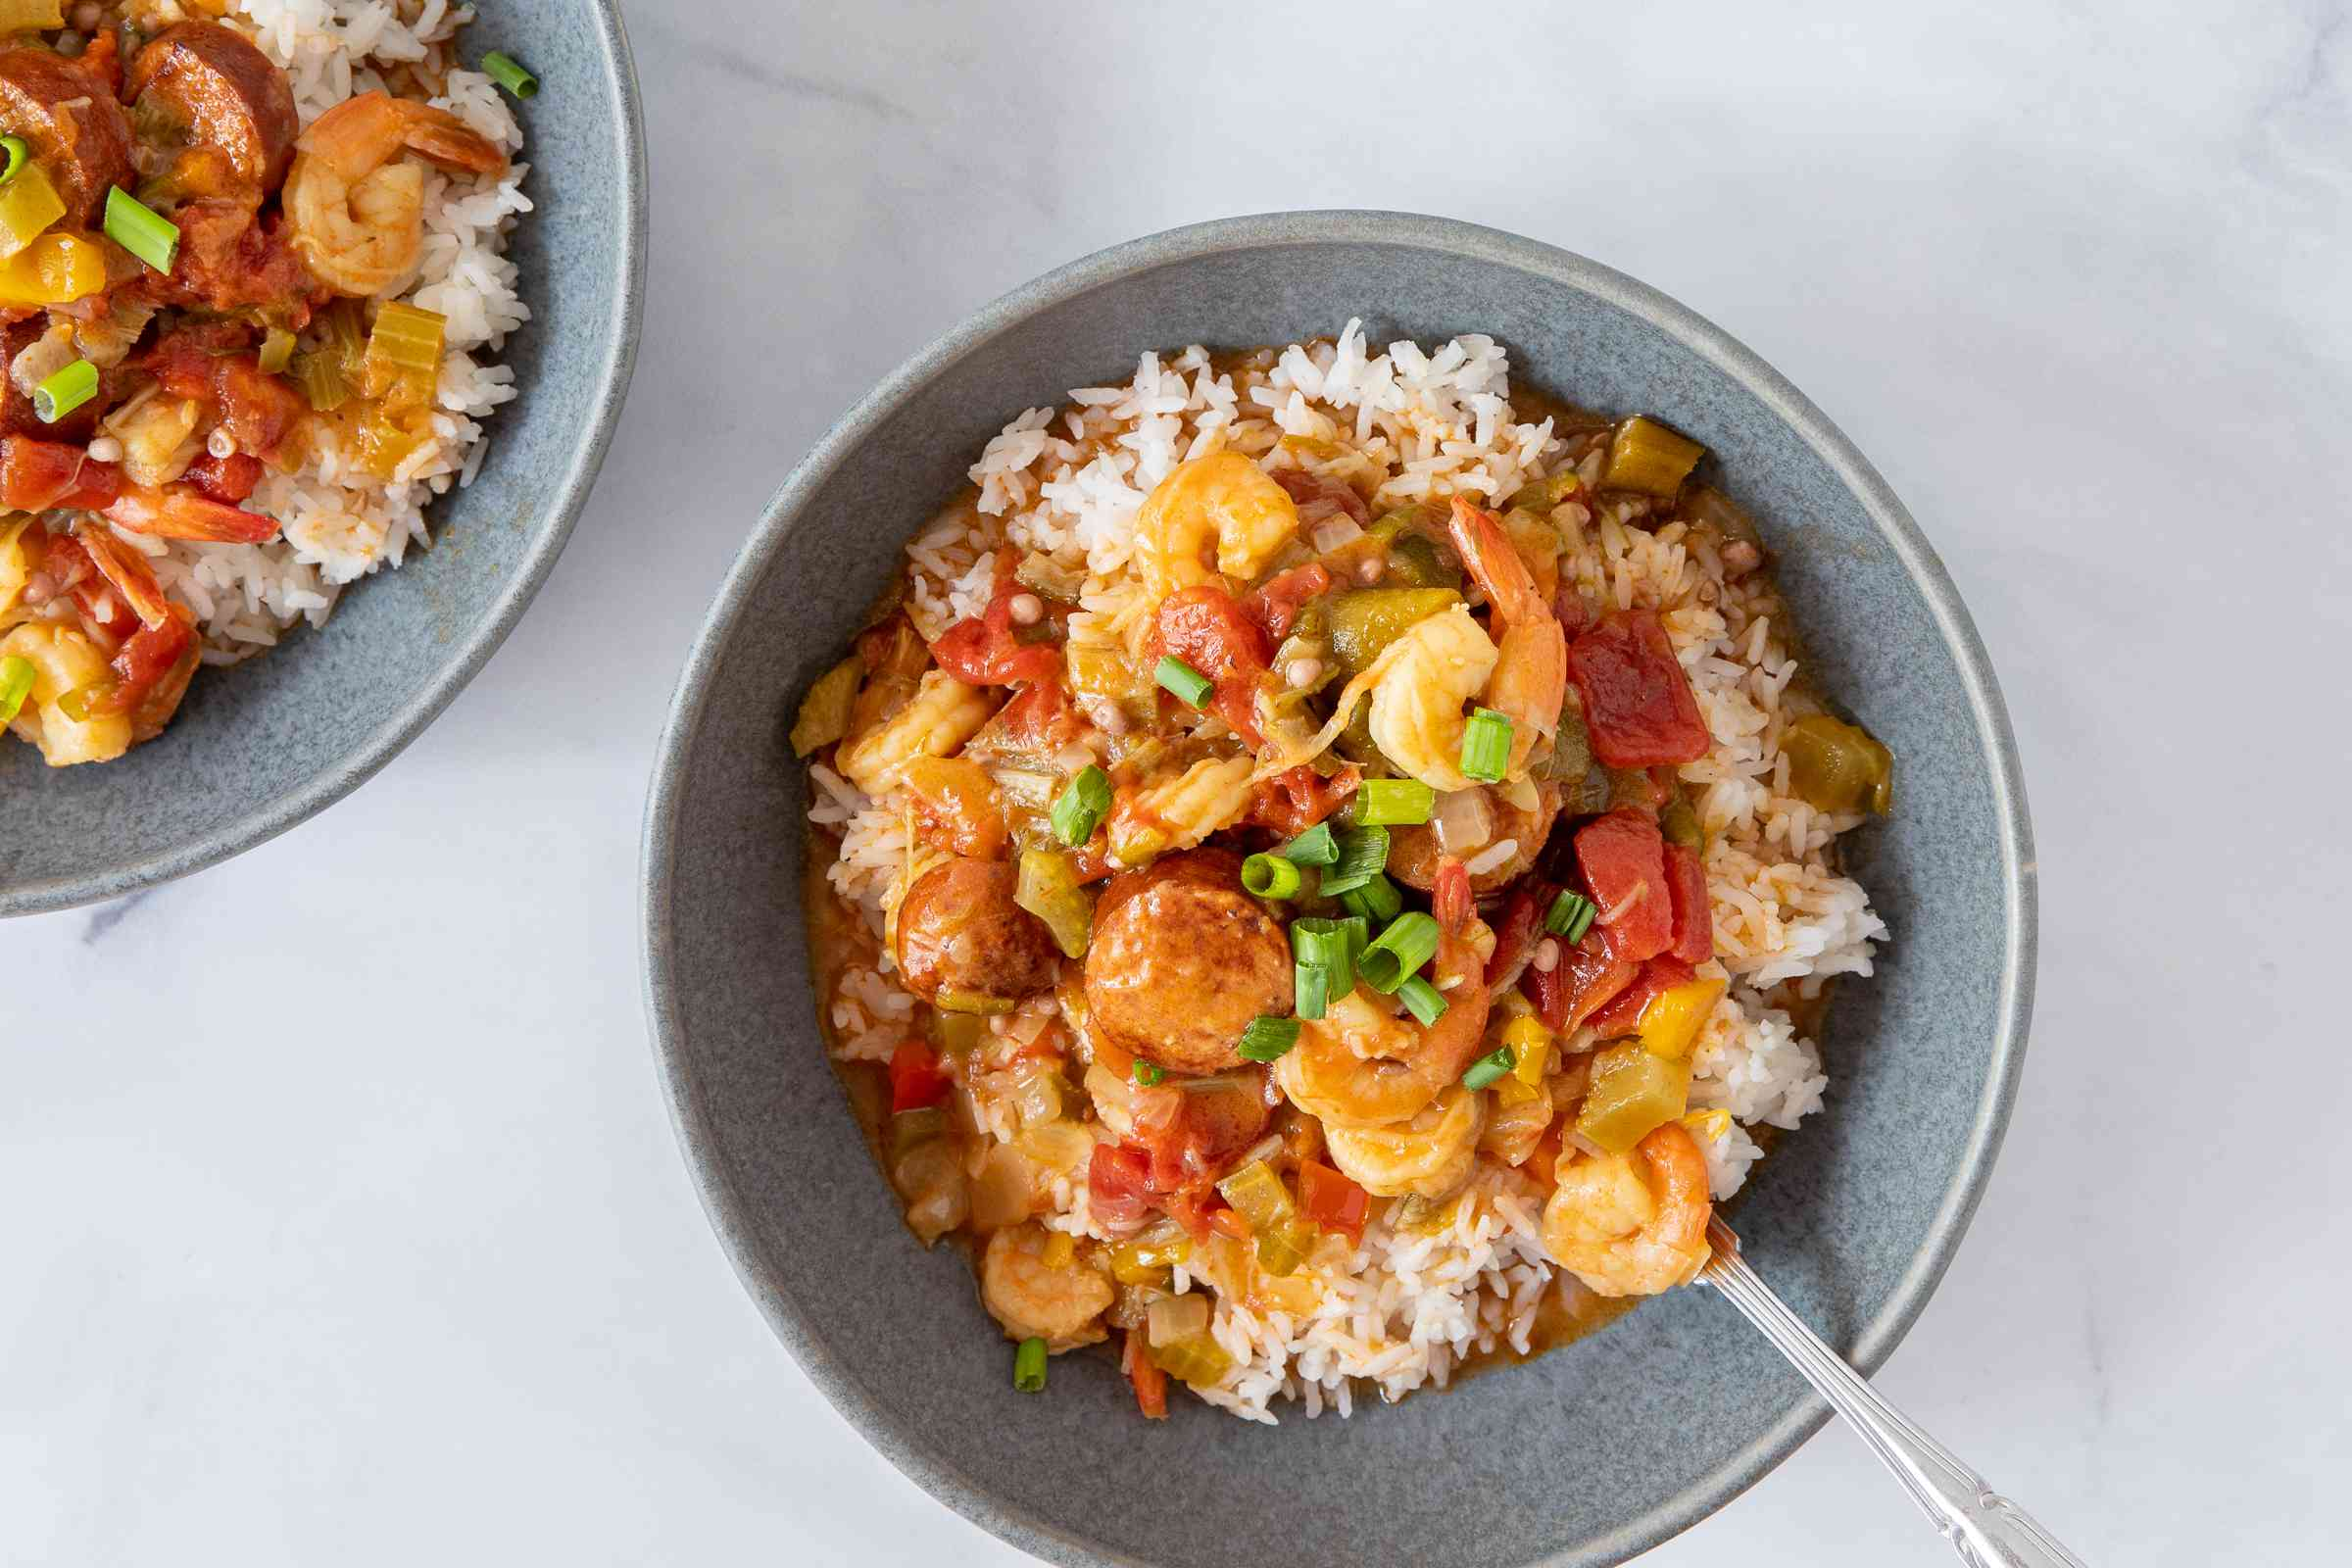 Shrimp and Sausage Gumbo served over rice